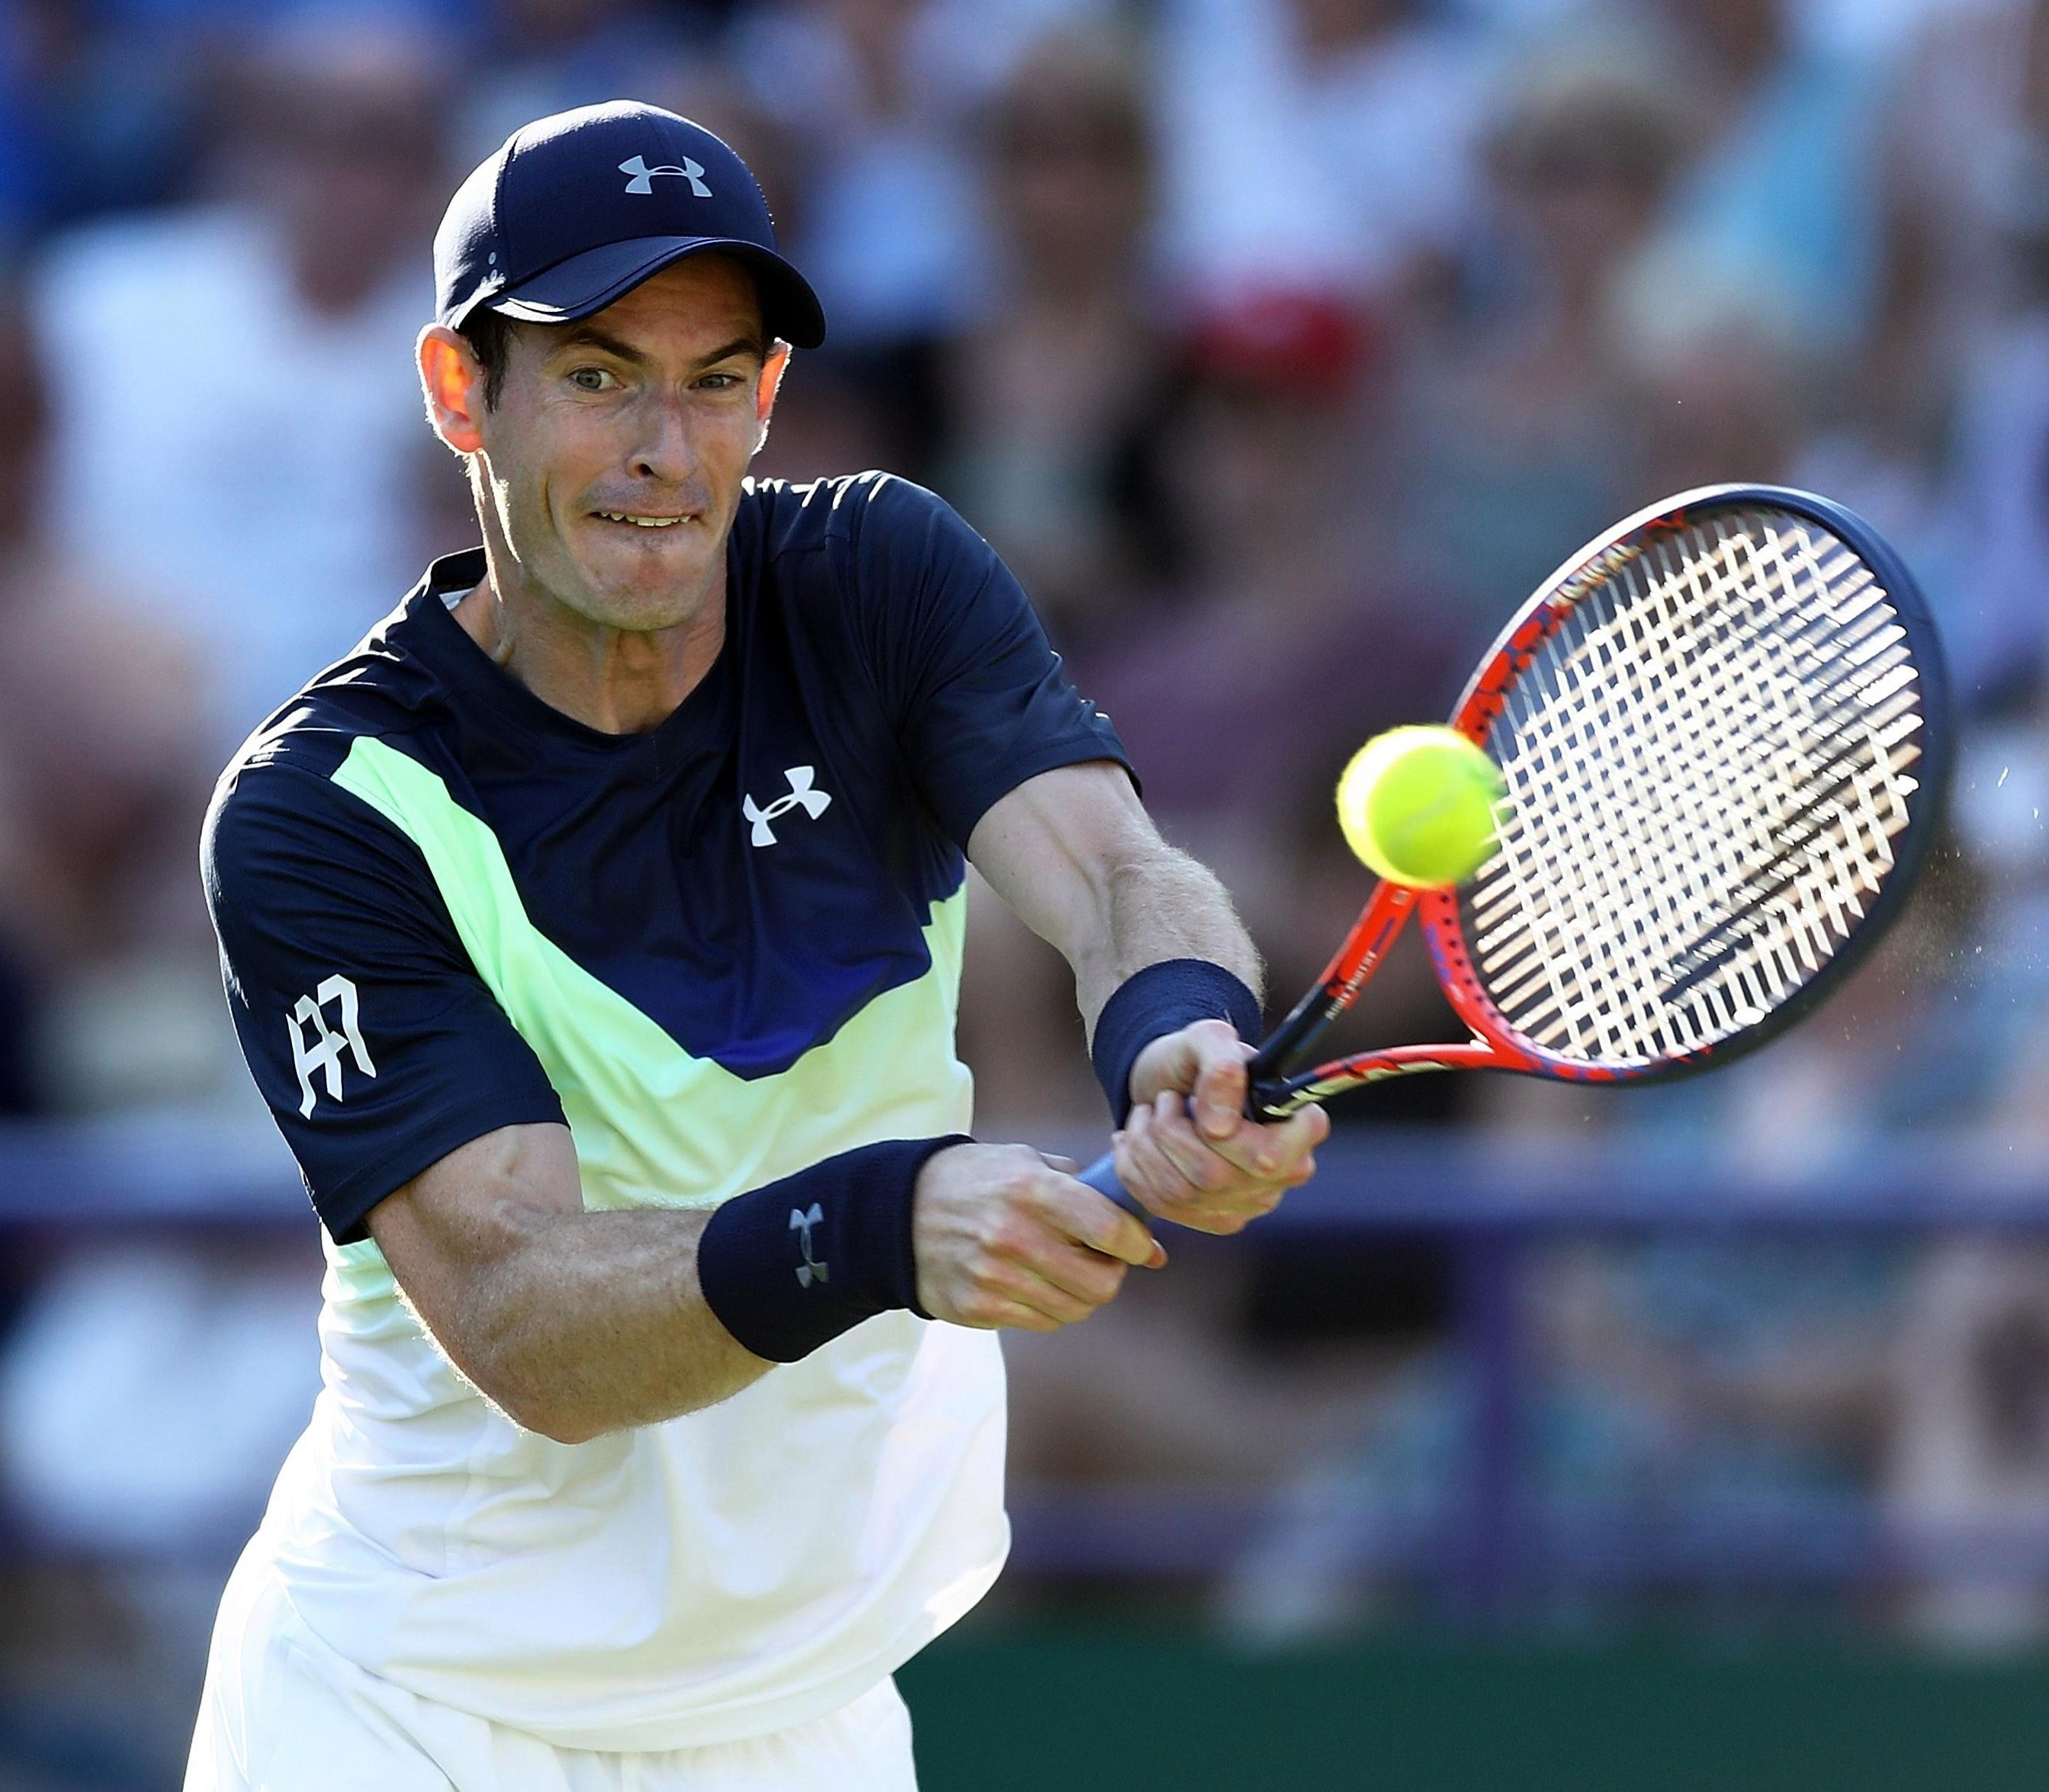 Scot Andy Murray is undecided if he'll bid for a third Wimbledon title in July